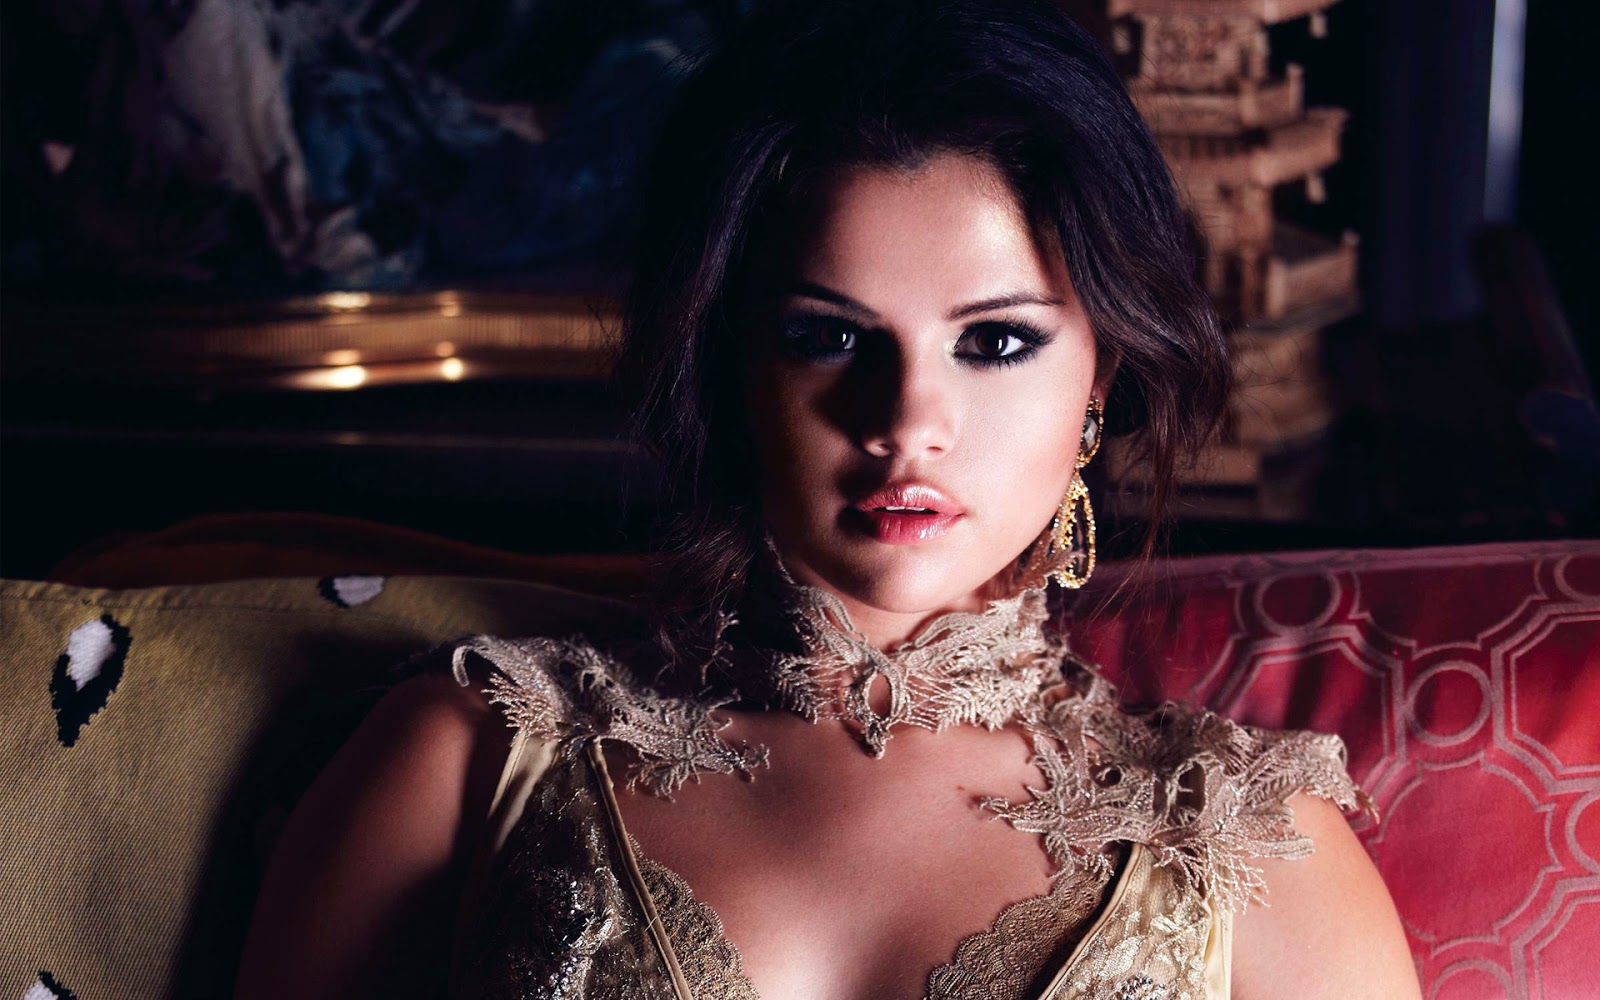 Hollywod Actress Selena Gomez Hot Hd Wallpaper She Is One -9904